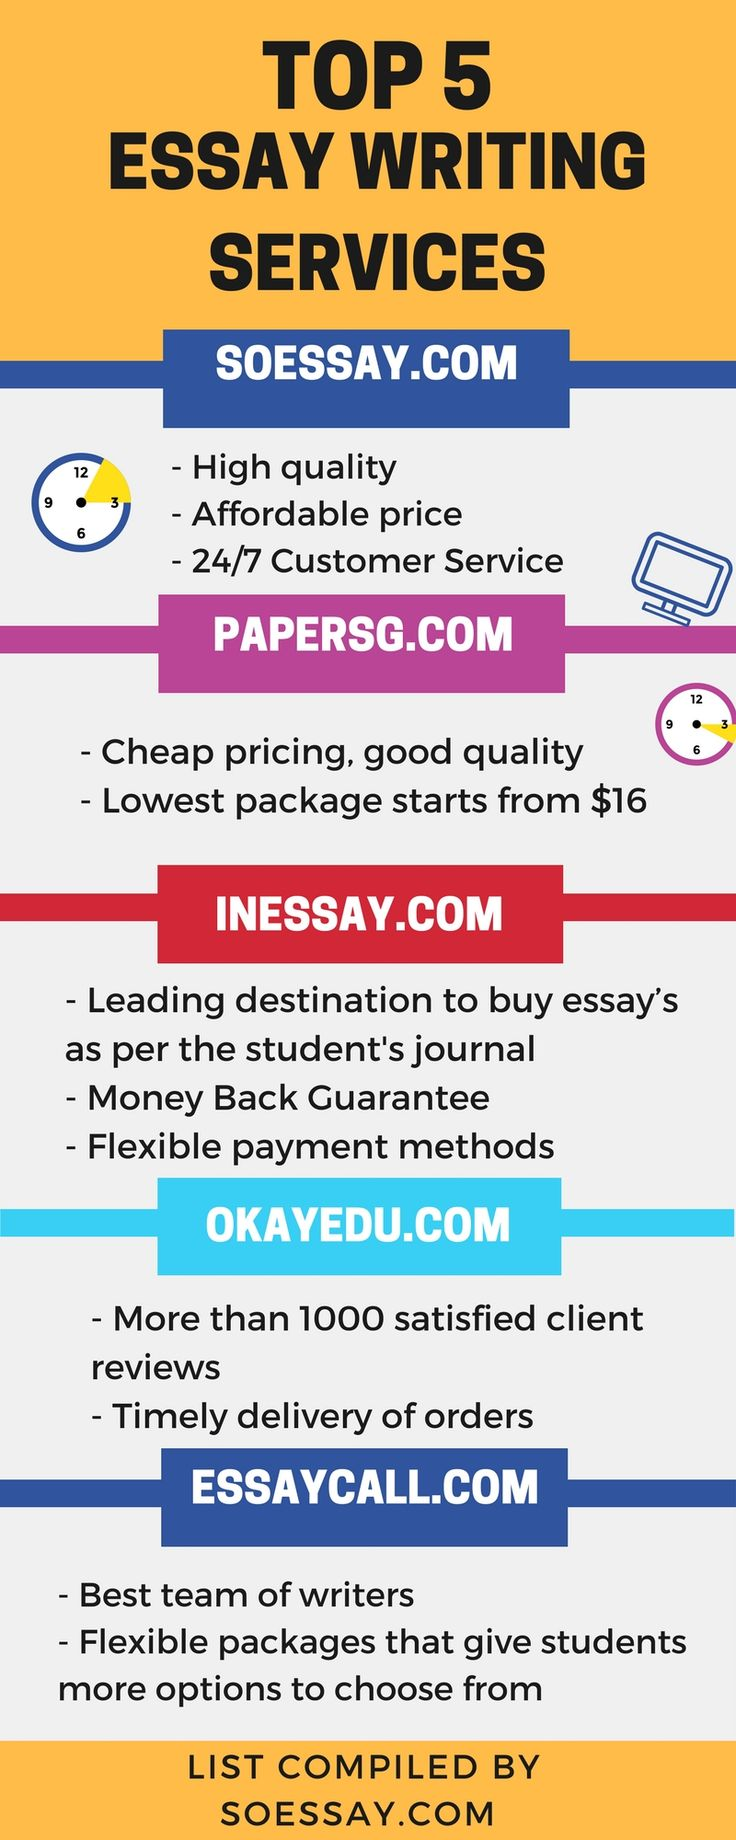 best online essay writing service guide images  finding an online essay writing service platform that offers you quality essays at an affordable price has never been easy until now